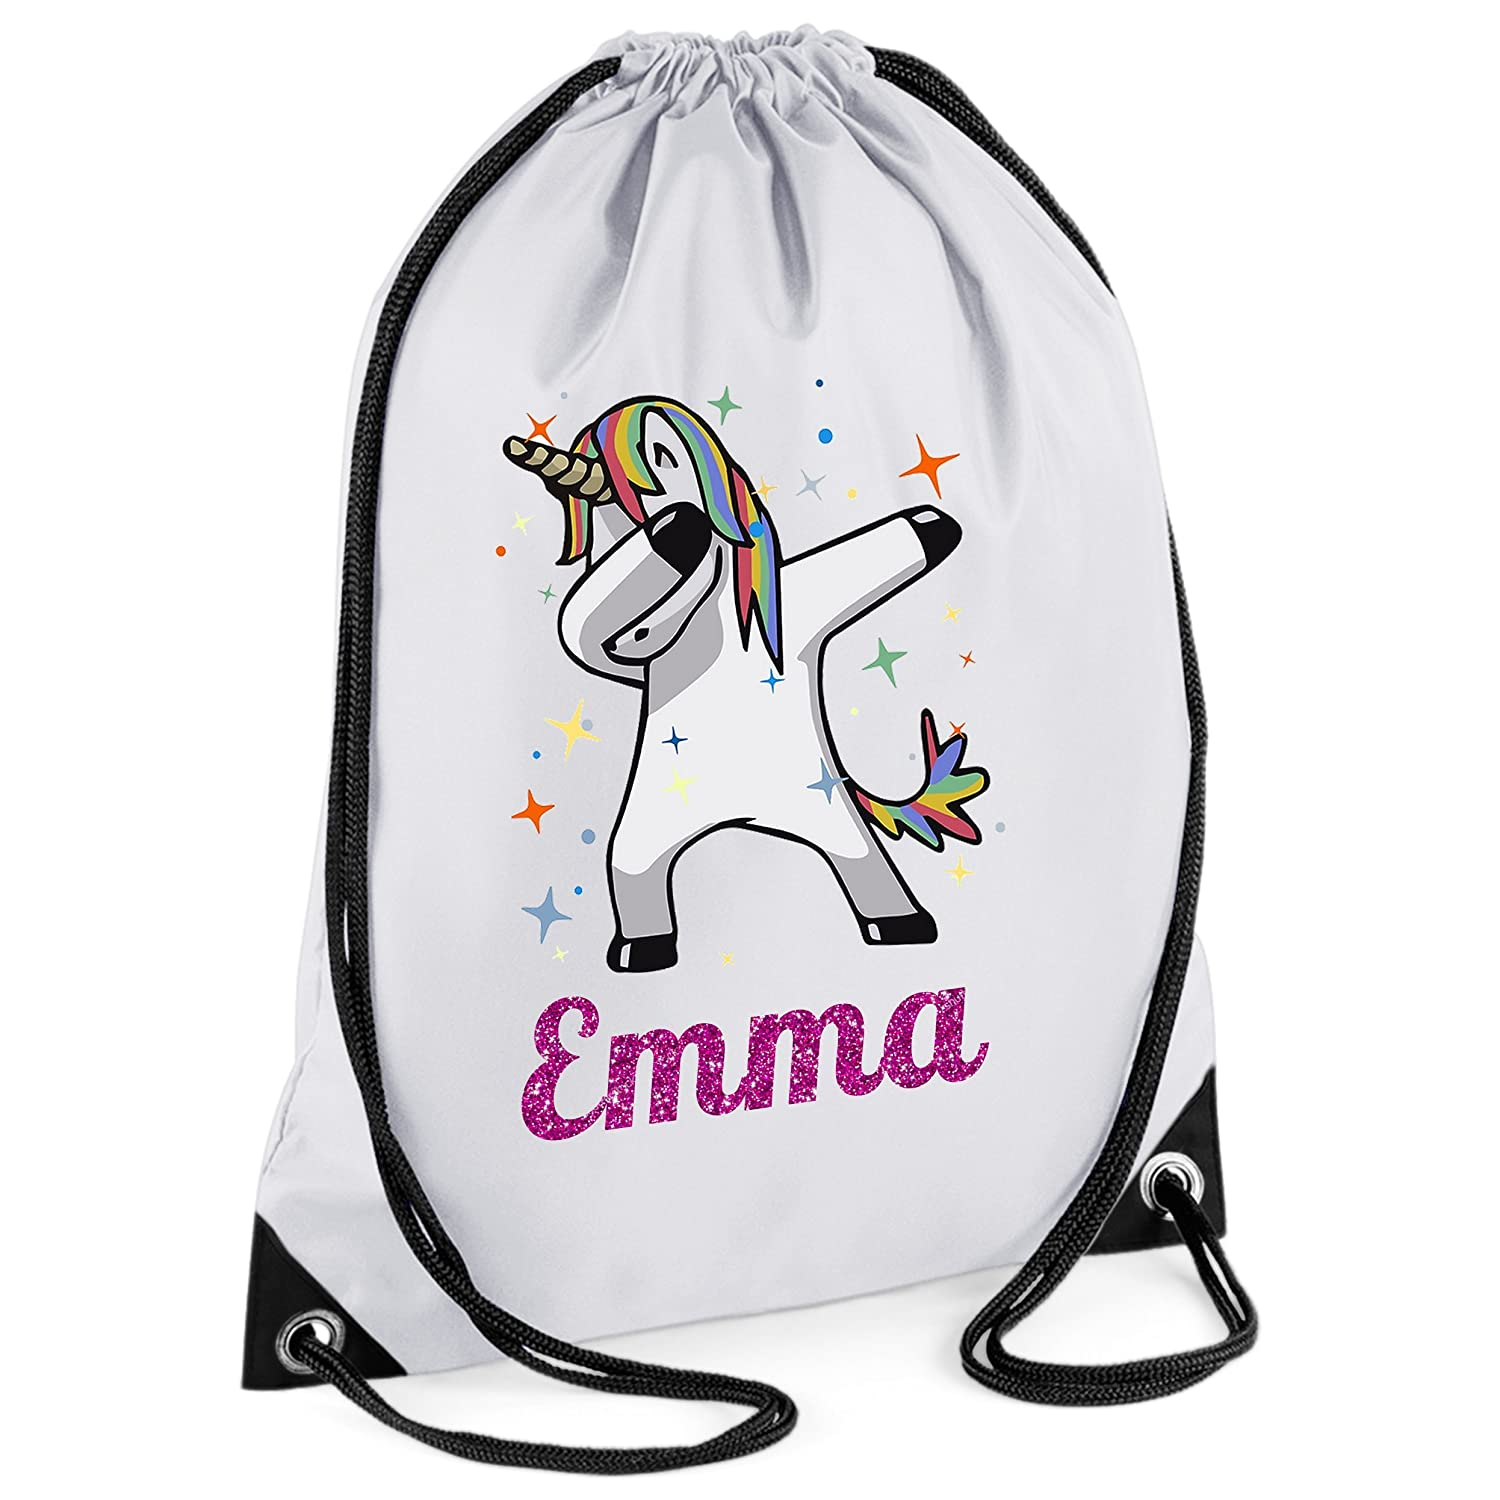 44th Street Ltd Personalised Unicorn DAB Drawstring PE Sports Swimming Gym Bag - Design 1A